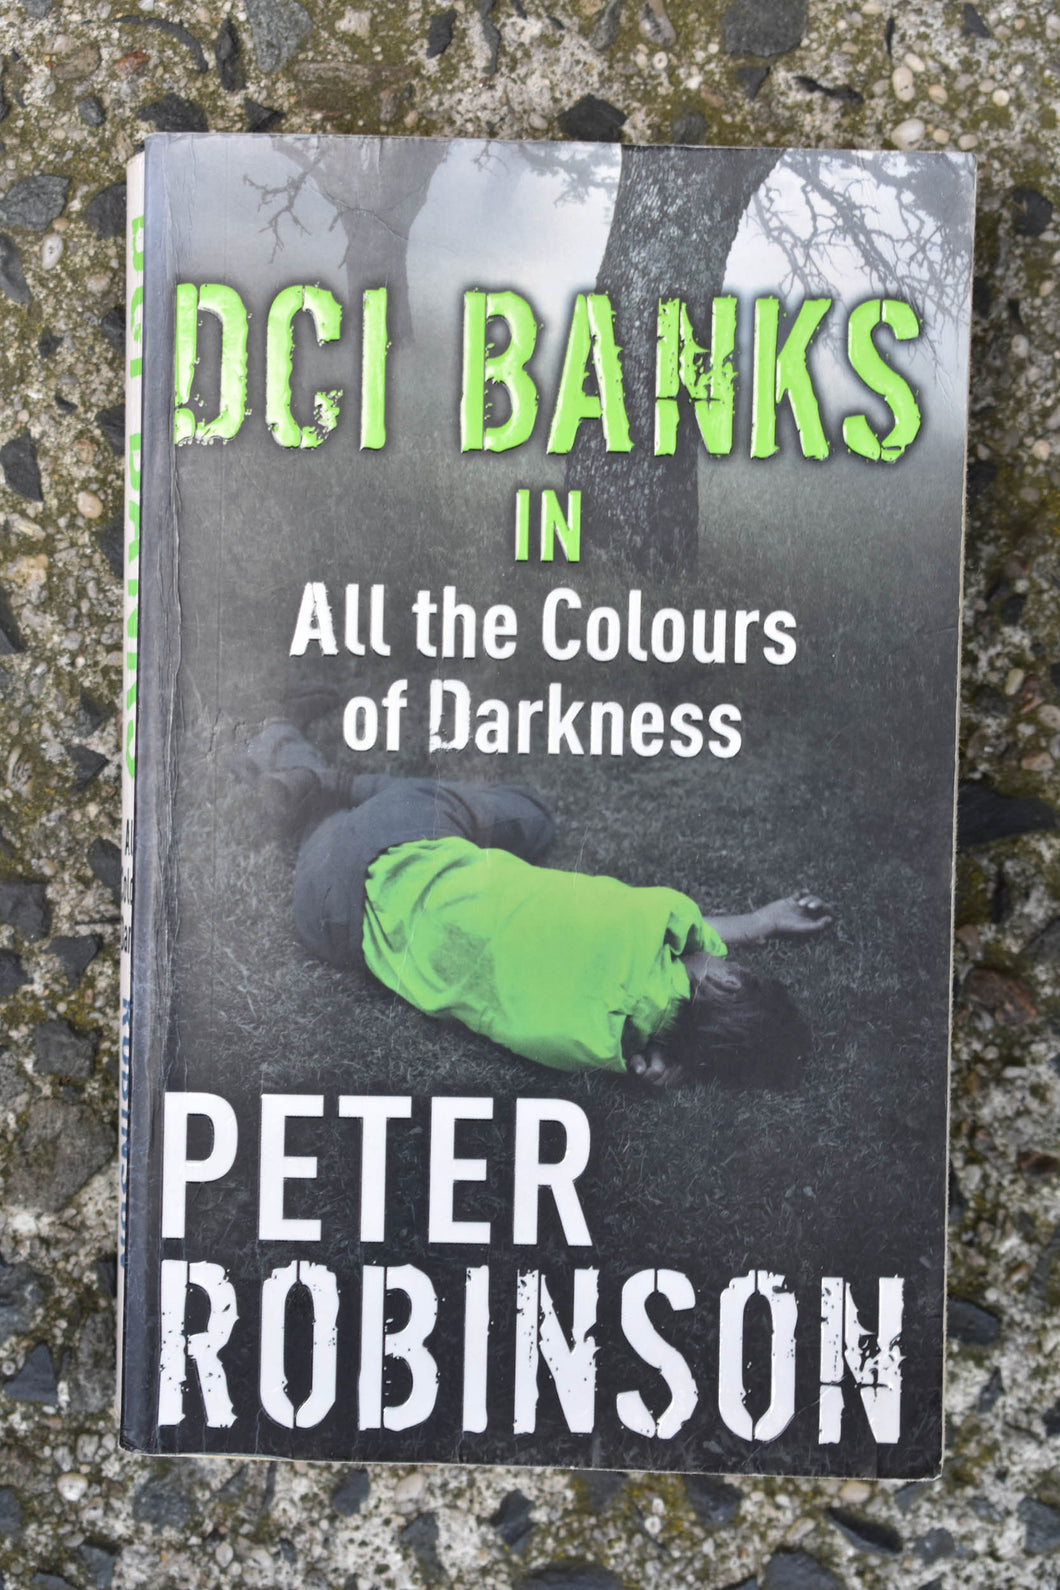 All the Colours of the Darkness by Peter Robinson